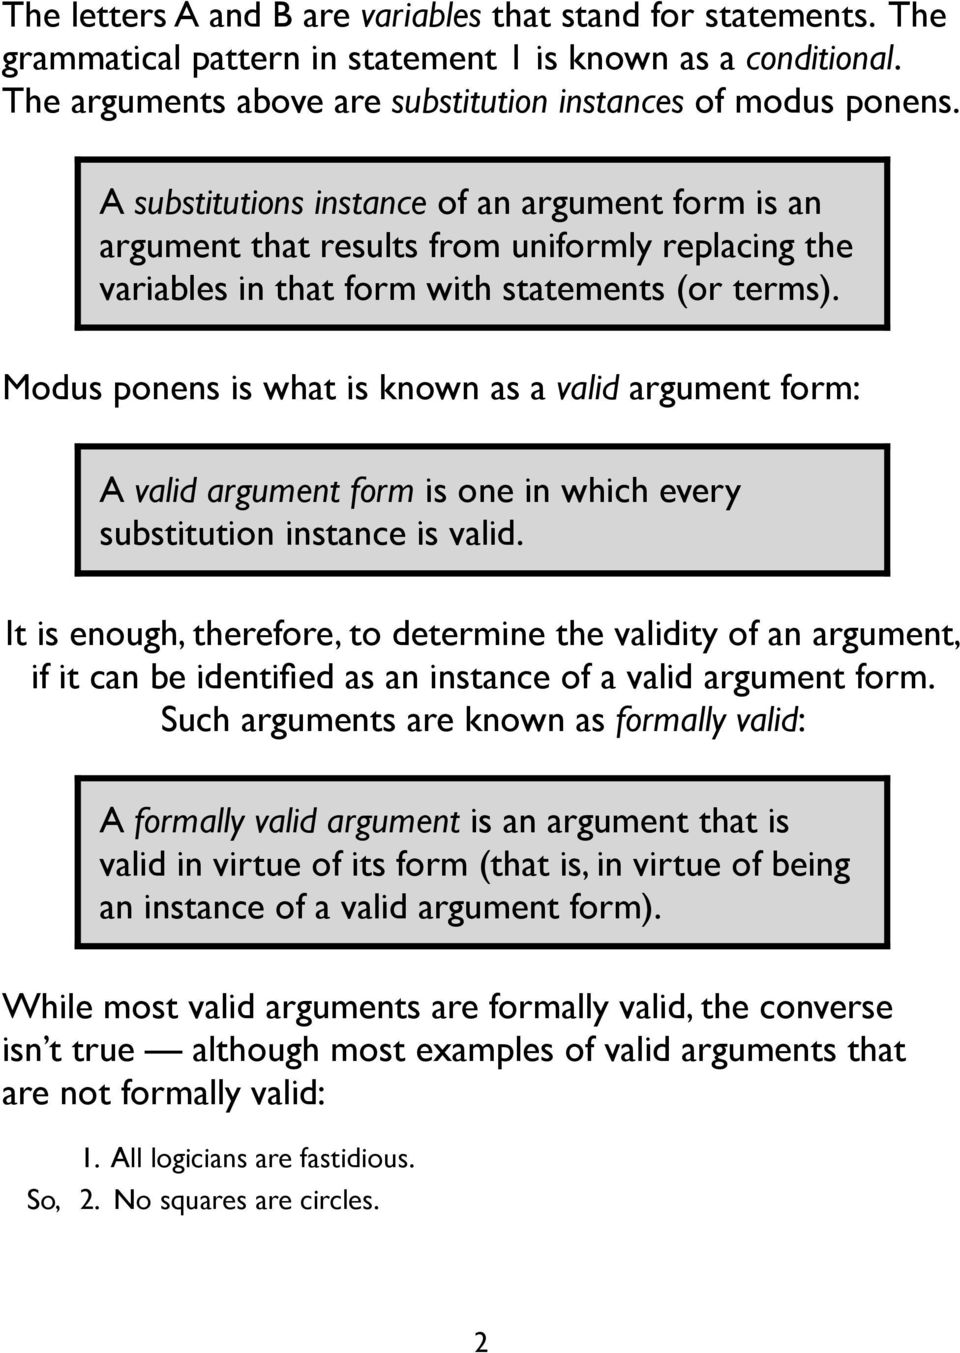 Modus ponens is what is known as a valid argument form: A valid argument form is one in which every substitution instance is valid.